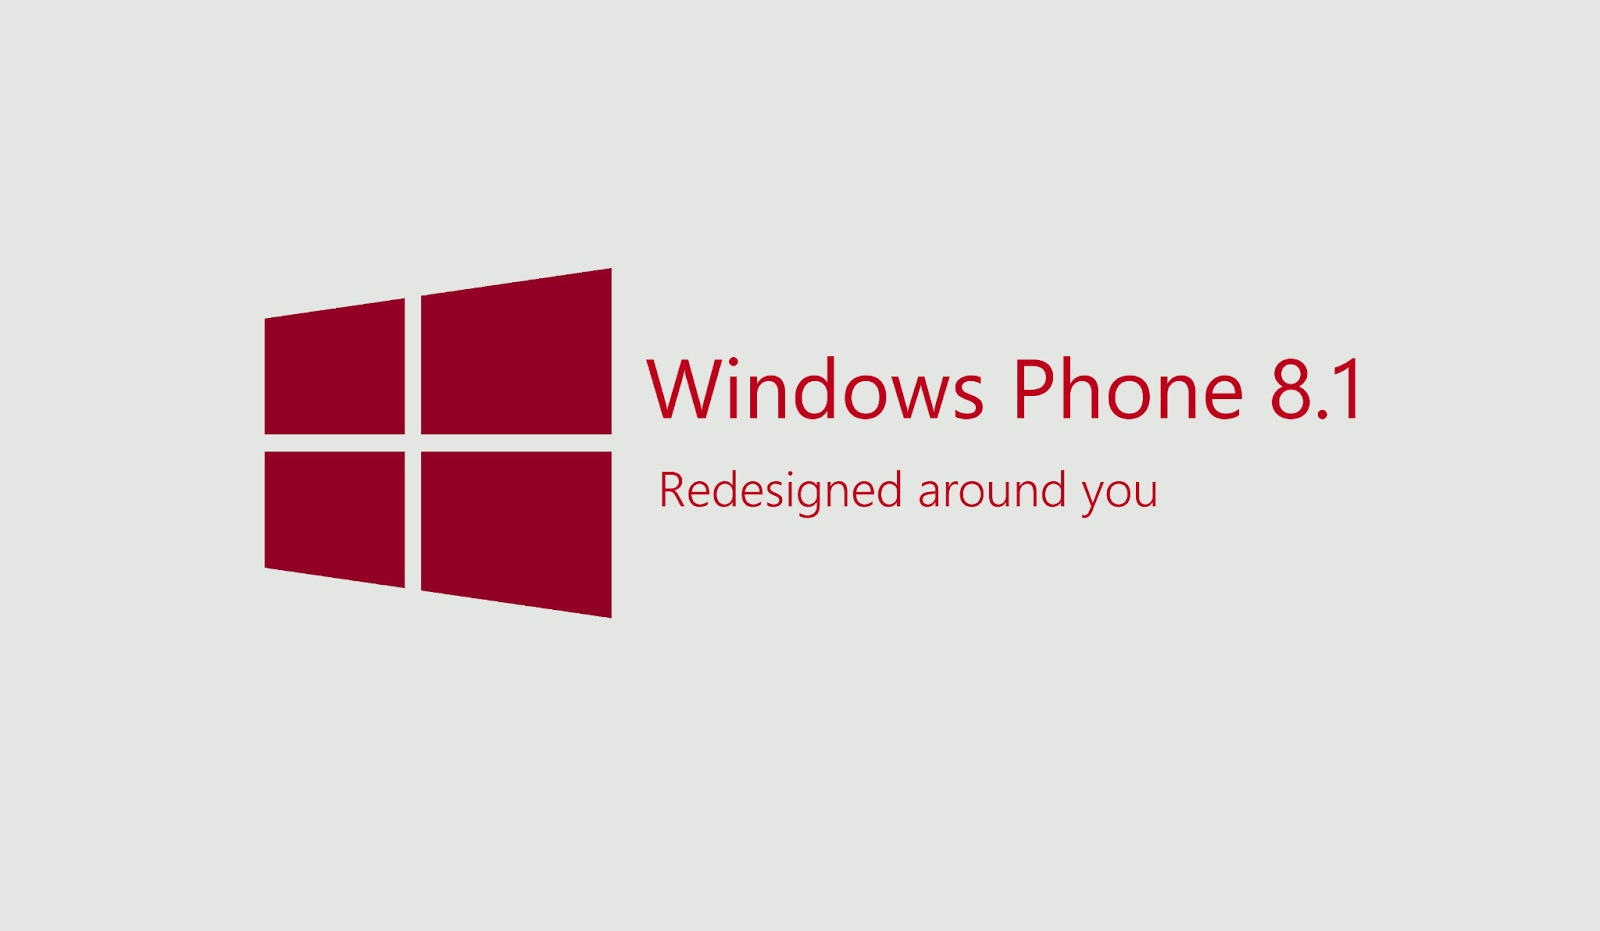 samsung windows phone 8.1